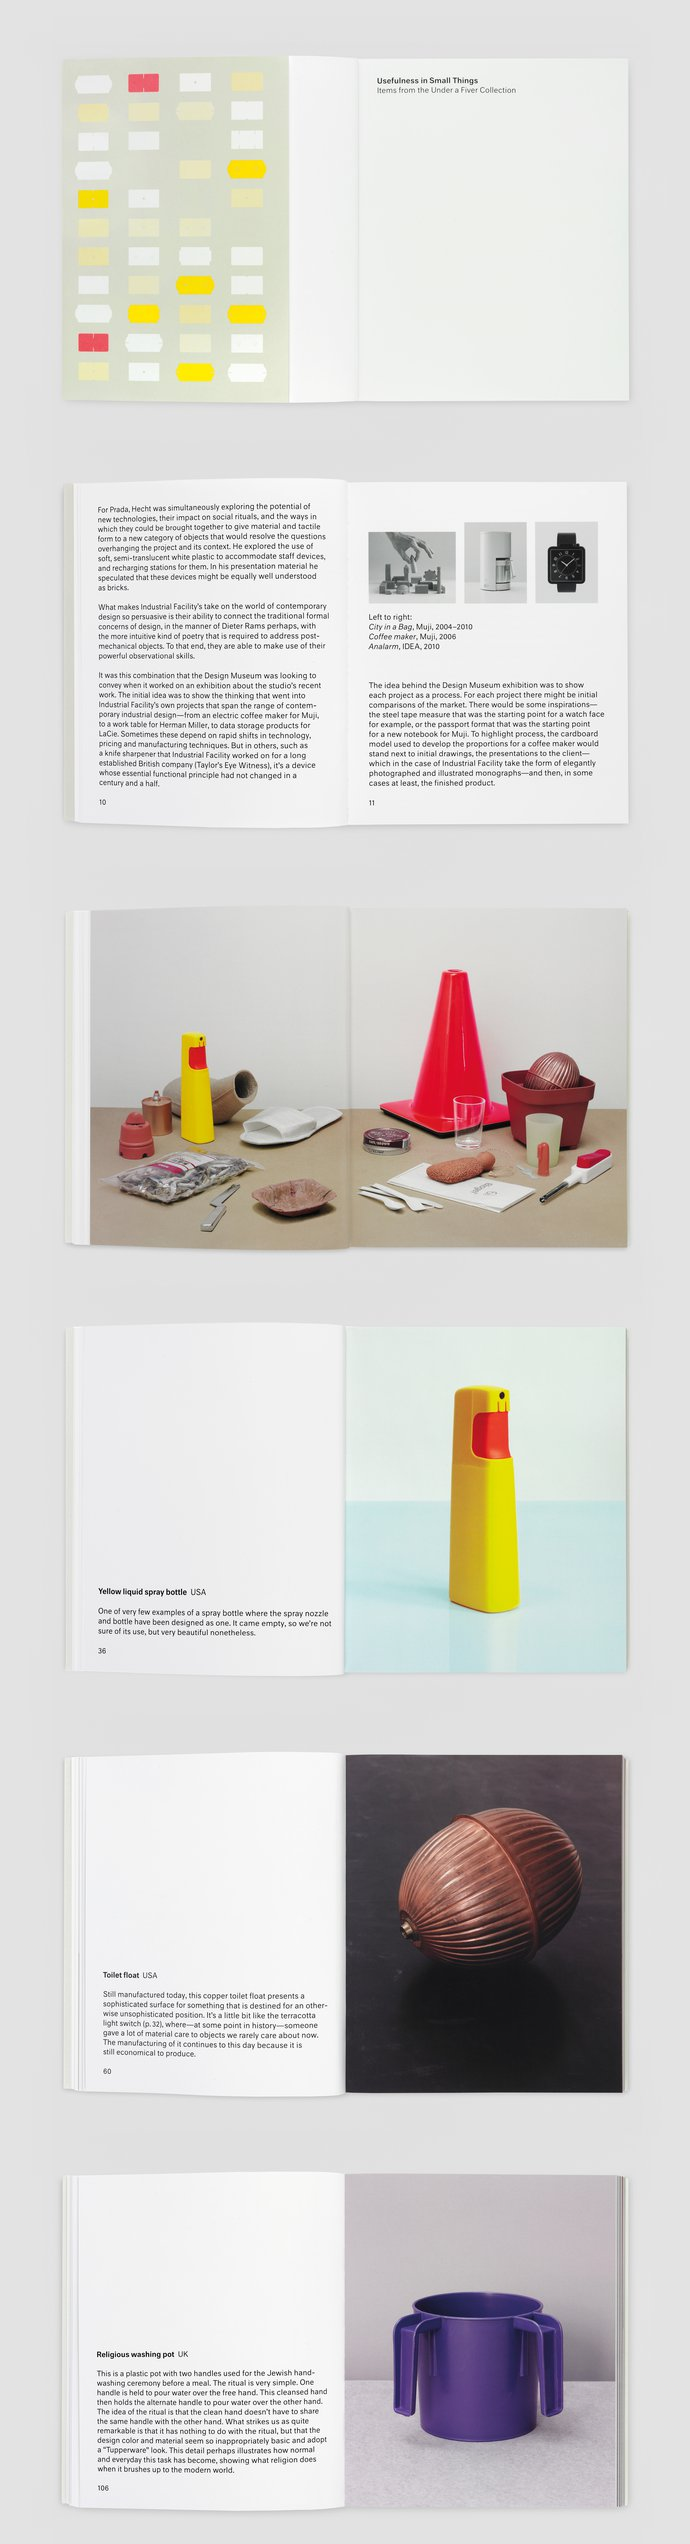 Rizzoli – Usefullness in Small Things: Items from the Under a Fiver Collection, 2011 (Publication), image 2